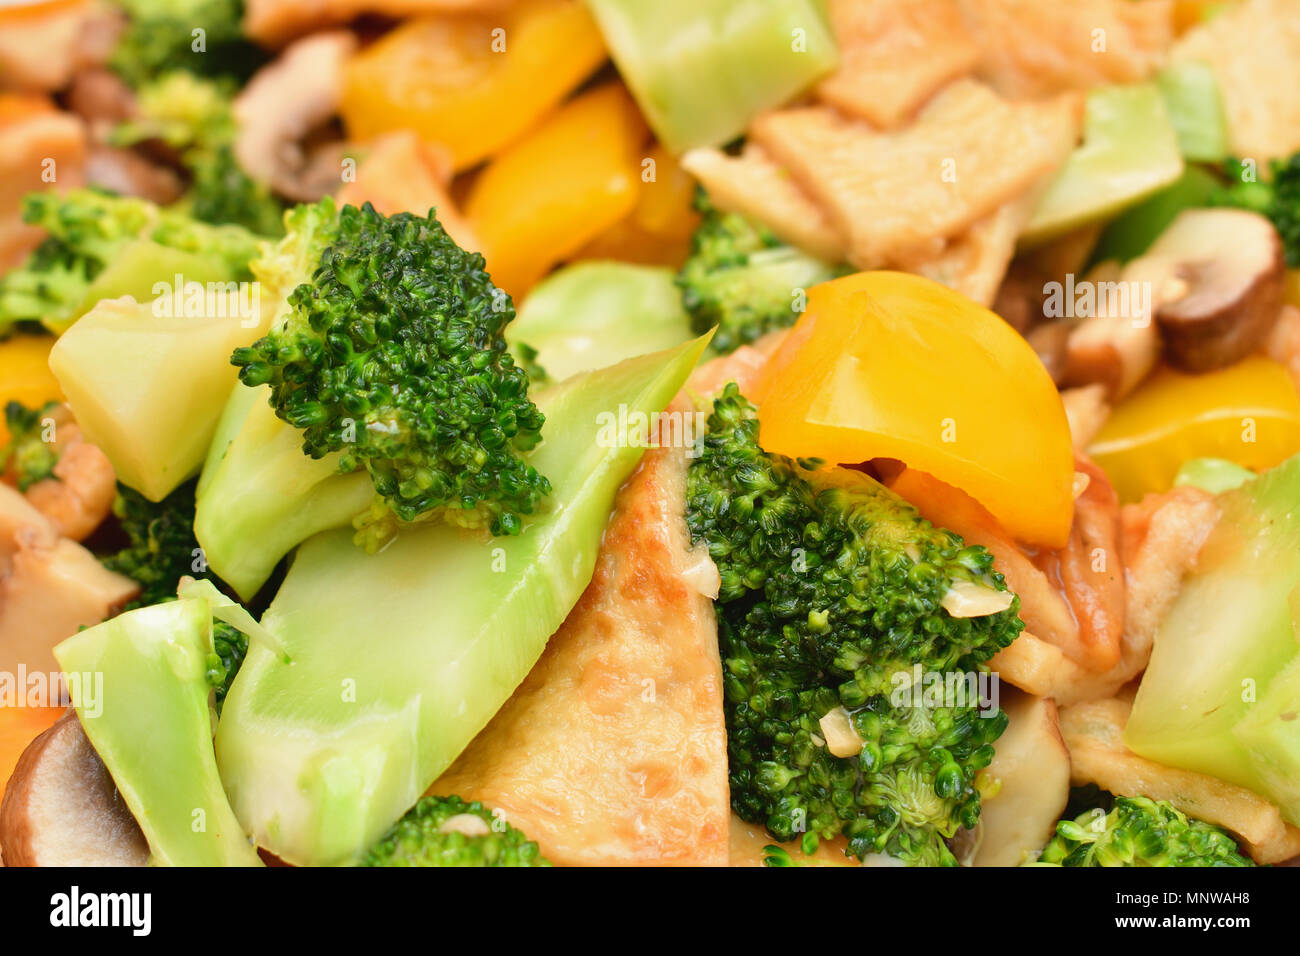 A Chinese dish of mixed vegetables including sliced broccoli, sliced capsicum, sliced mushrooms and beancurd skin. Stock Photo